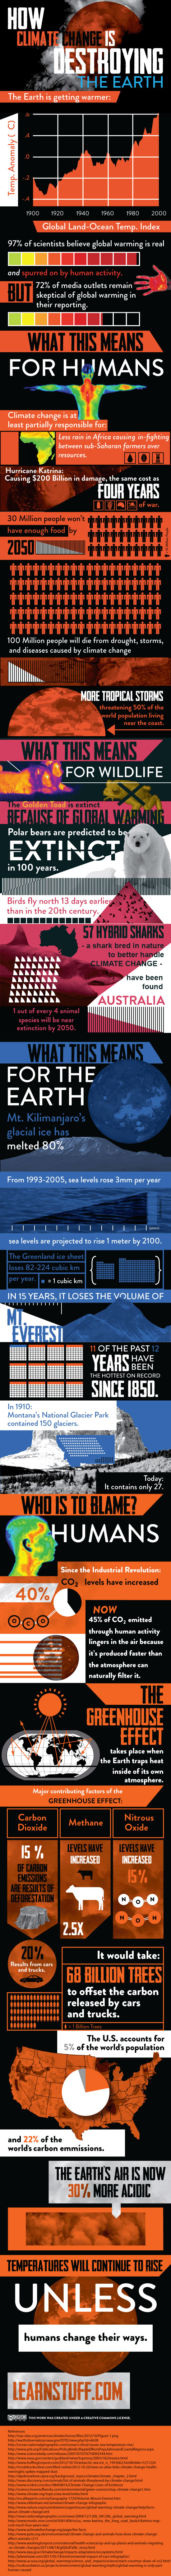 climate change, global warming, infographic, climate change infographic, global warming infographic, the earth is gettign warmer, environmental destruction, human and global warming, human activity global warming